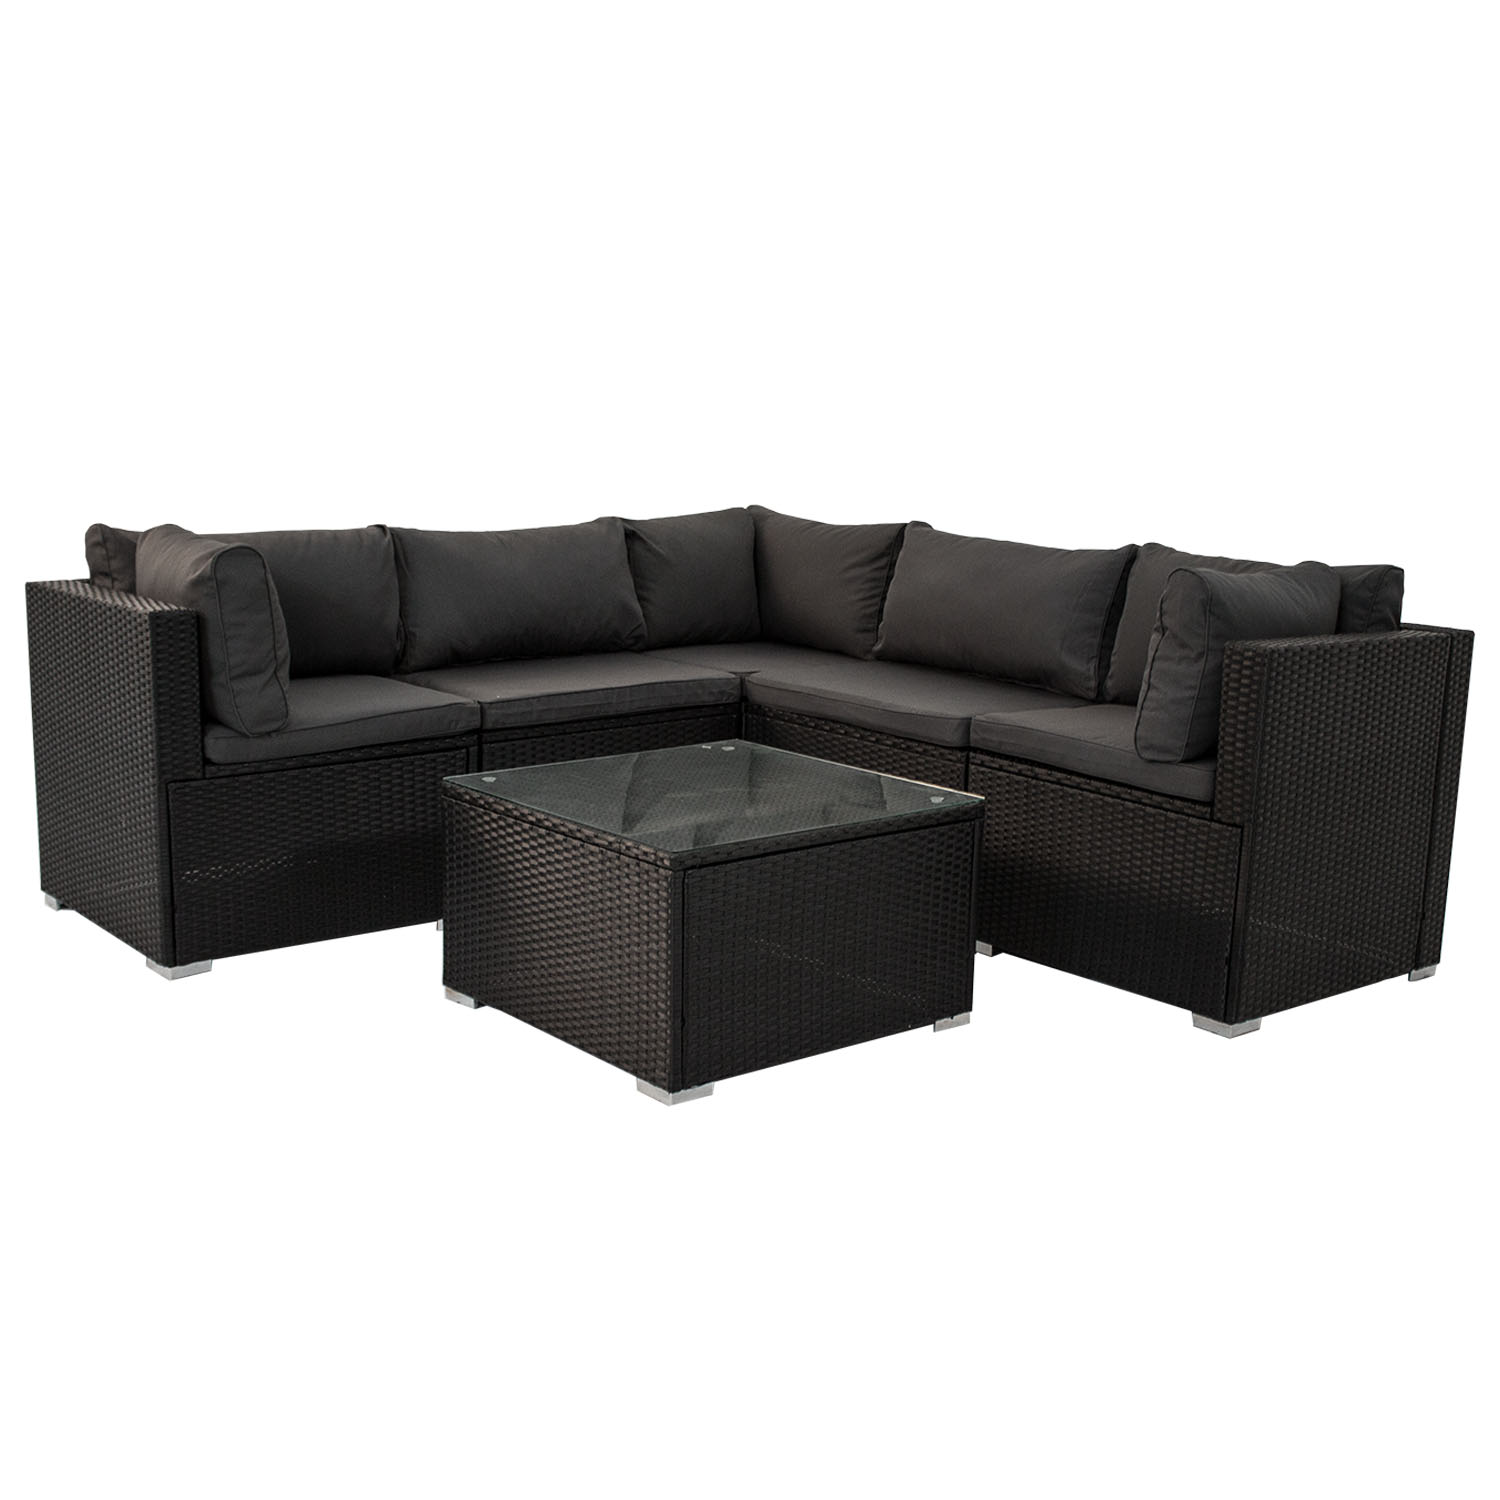 gartenm bel polyrattan lounge gartenset rattan sitzgruppe. Black Bedroom Furniture Sets. Home Design Ideas